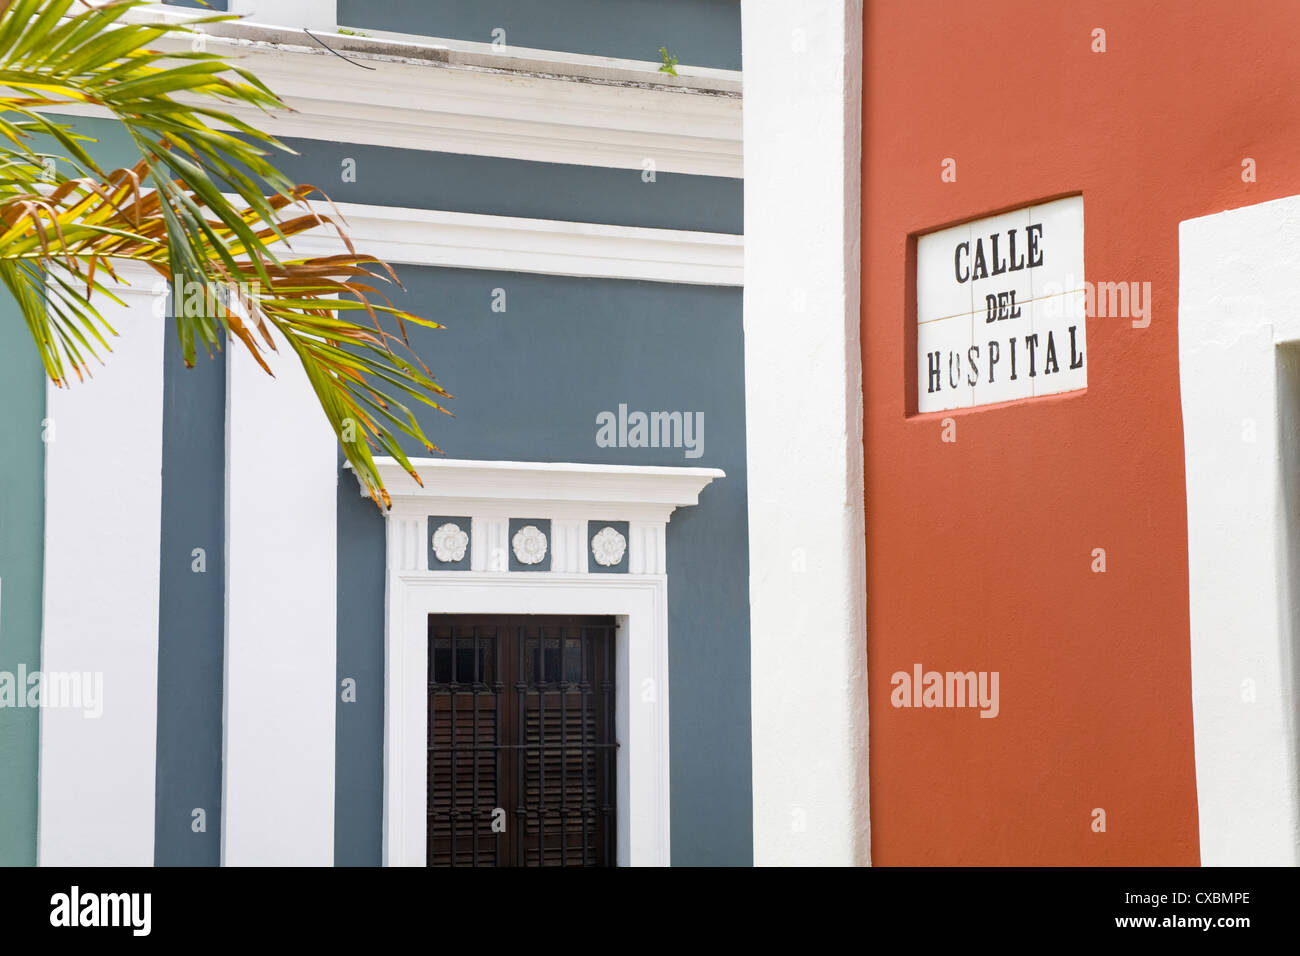 Calle de Hospital in Old City of San Juan, Puerto Rico Island, West Indies, United States of America, Central America - Stock Image